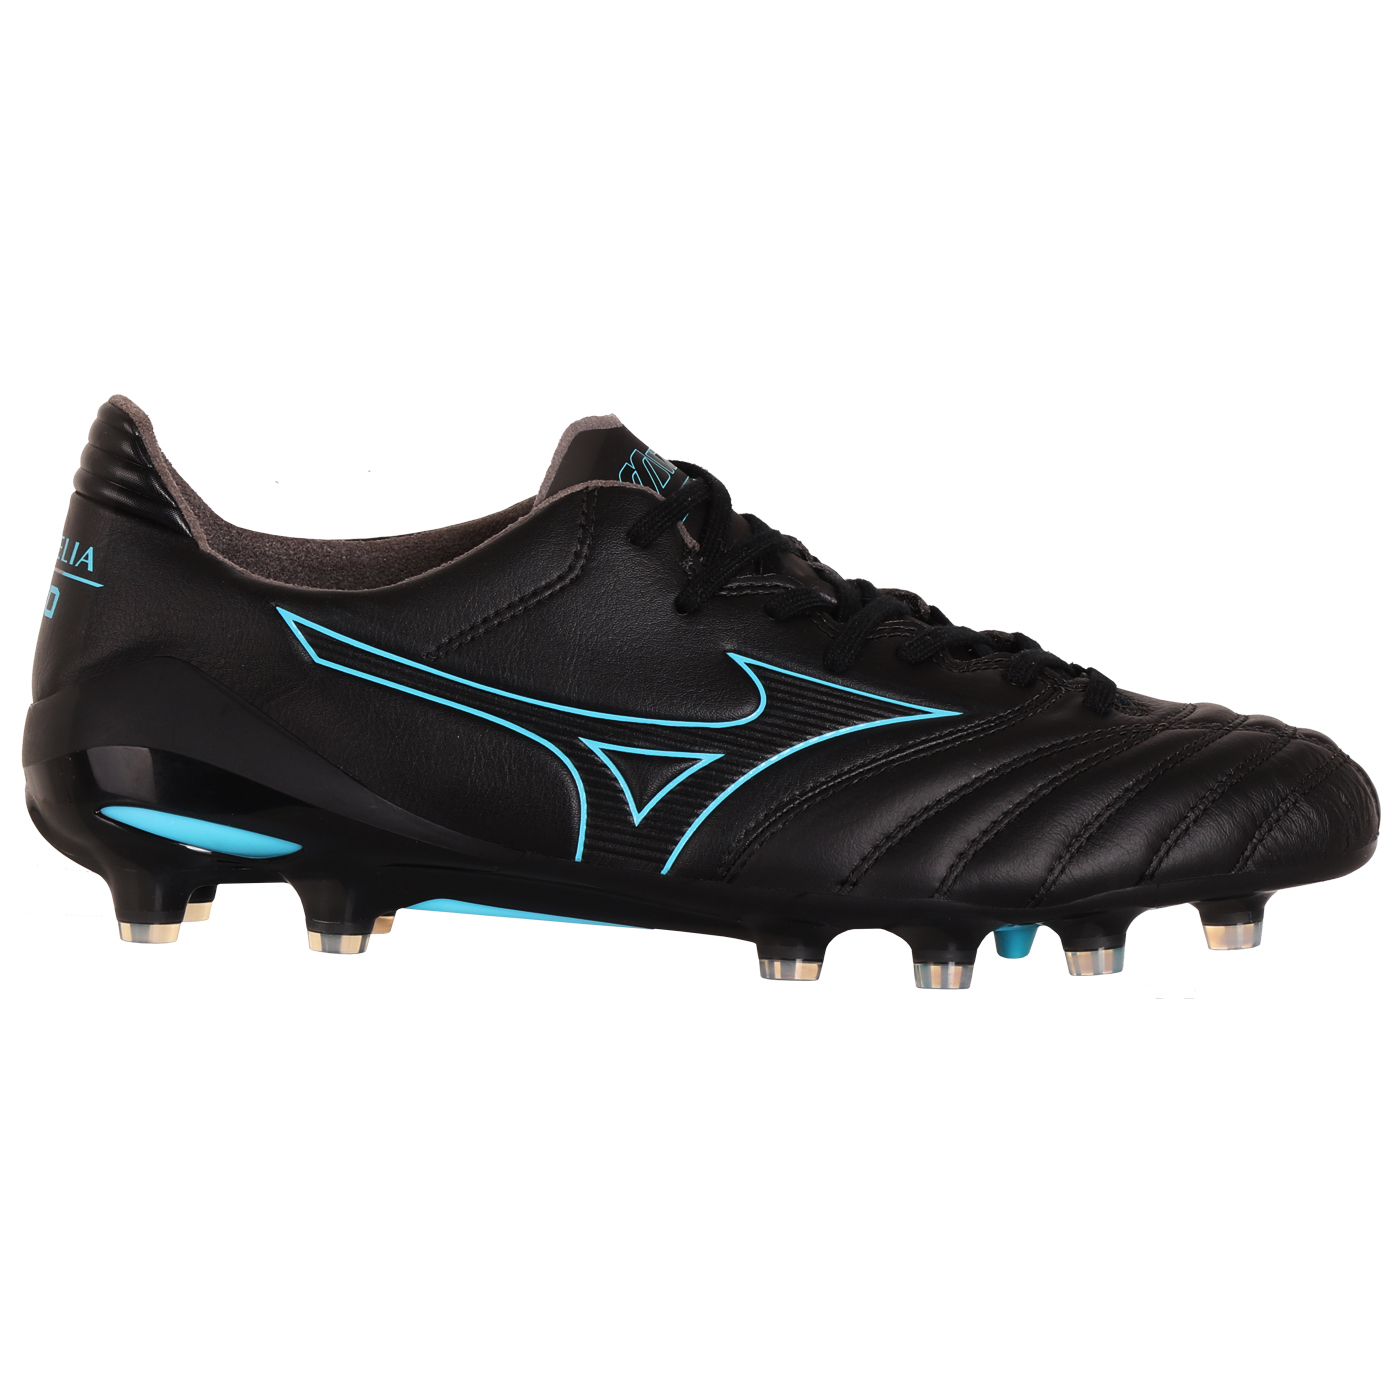 MORELIA NEO II MD - BLACK/ BLUE ATOLL